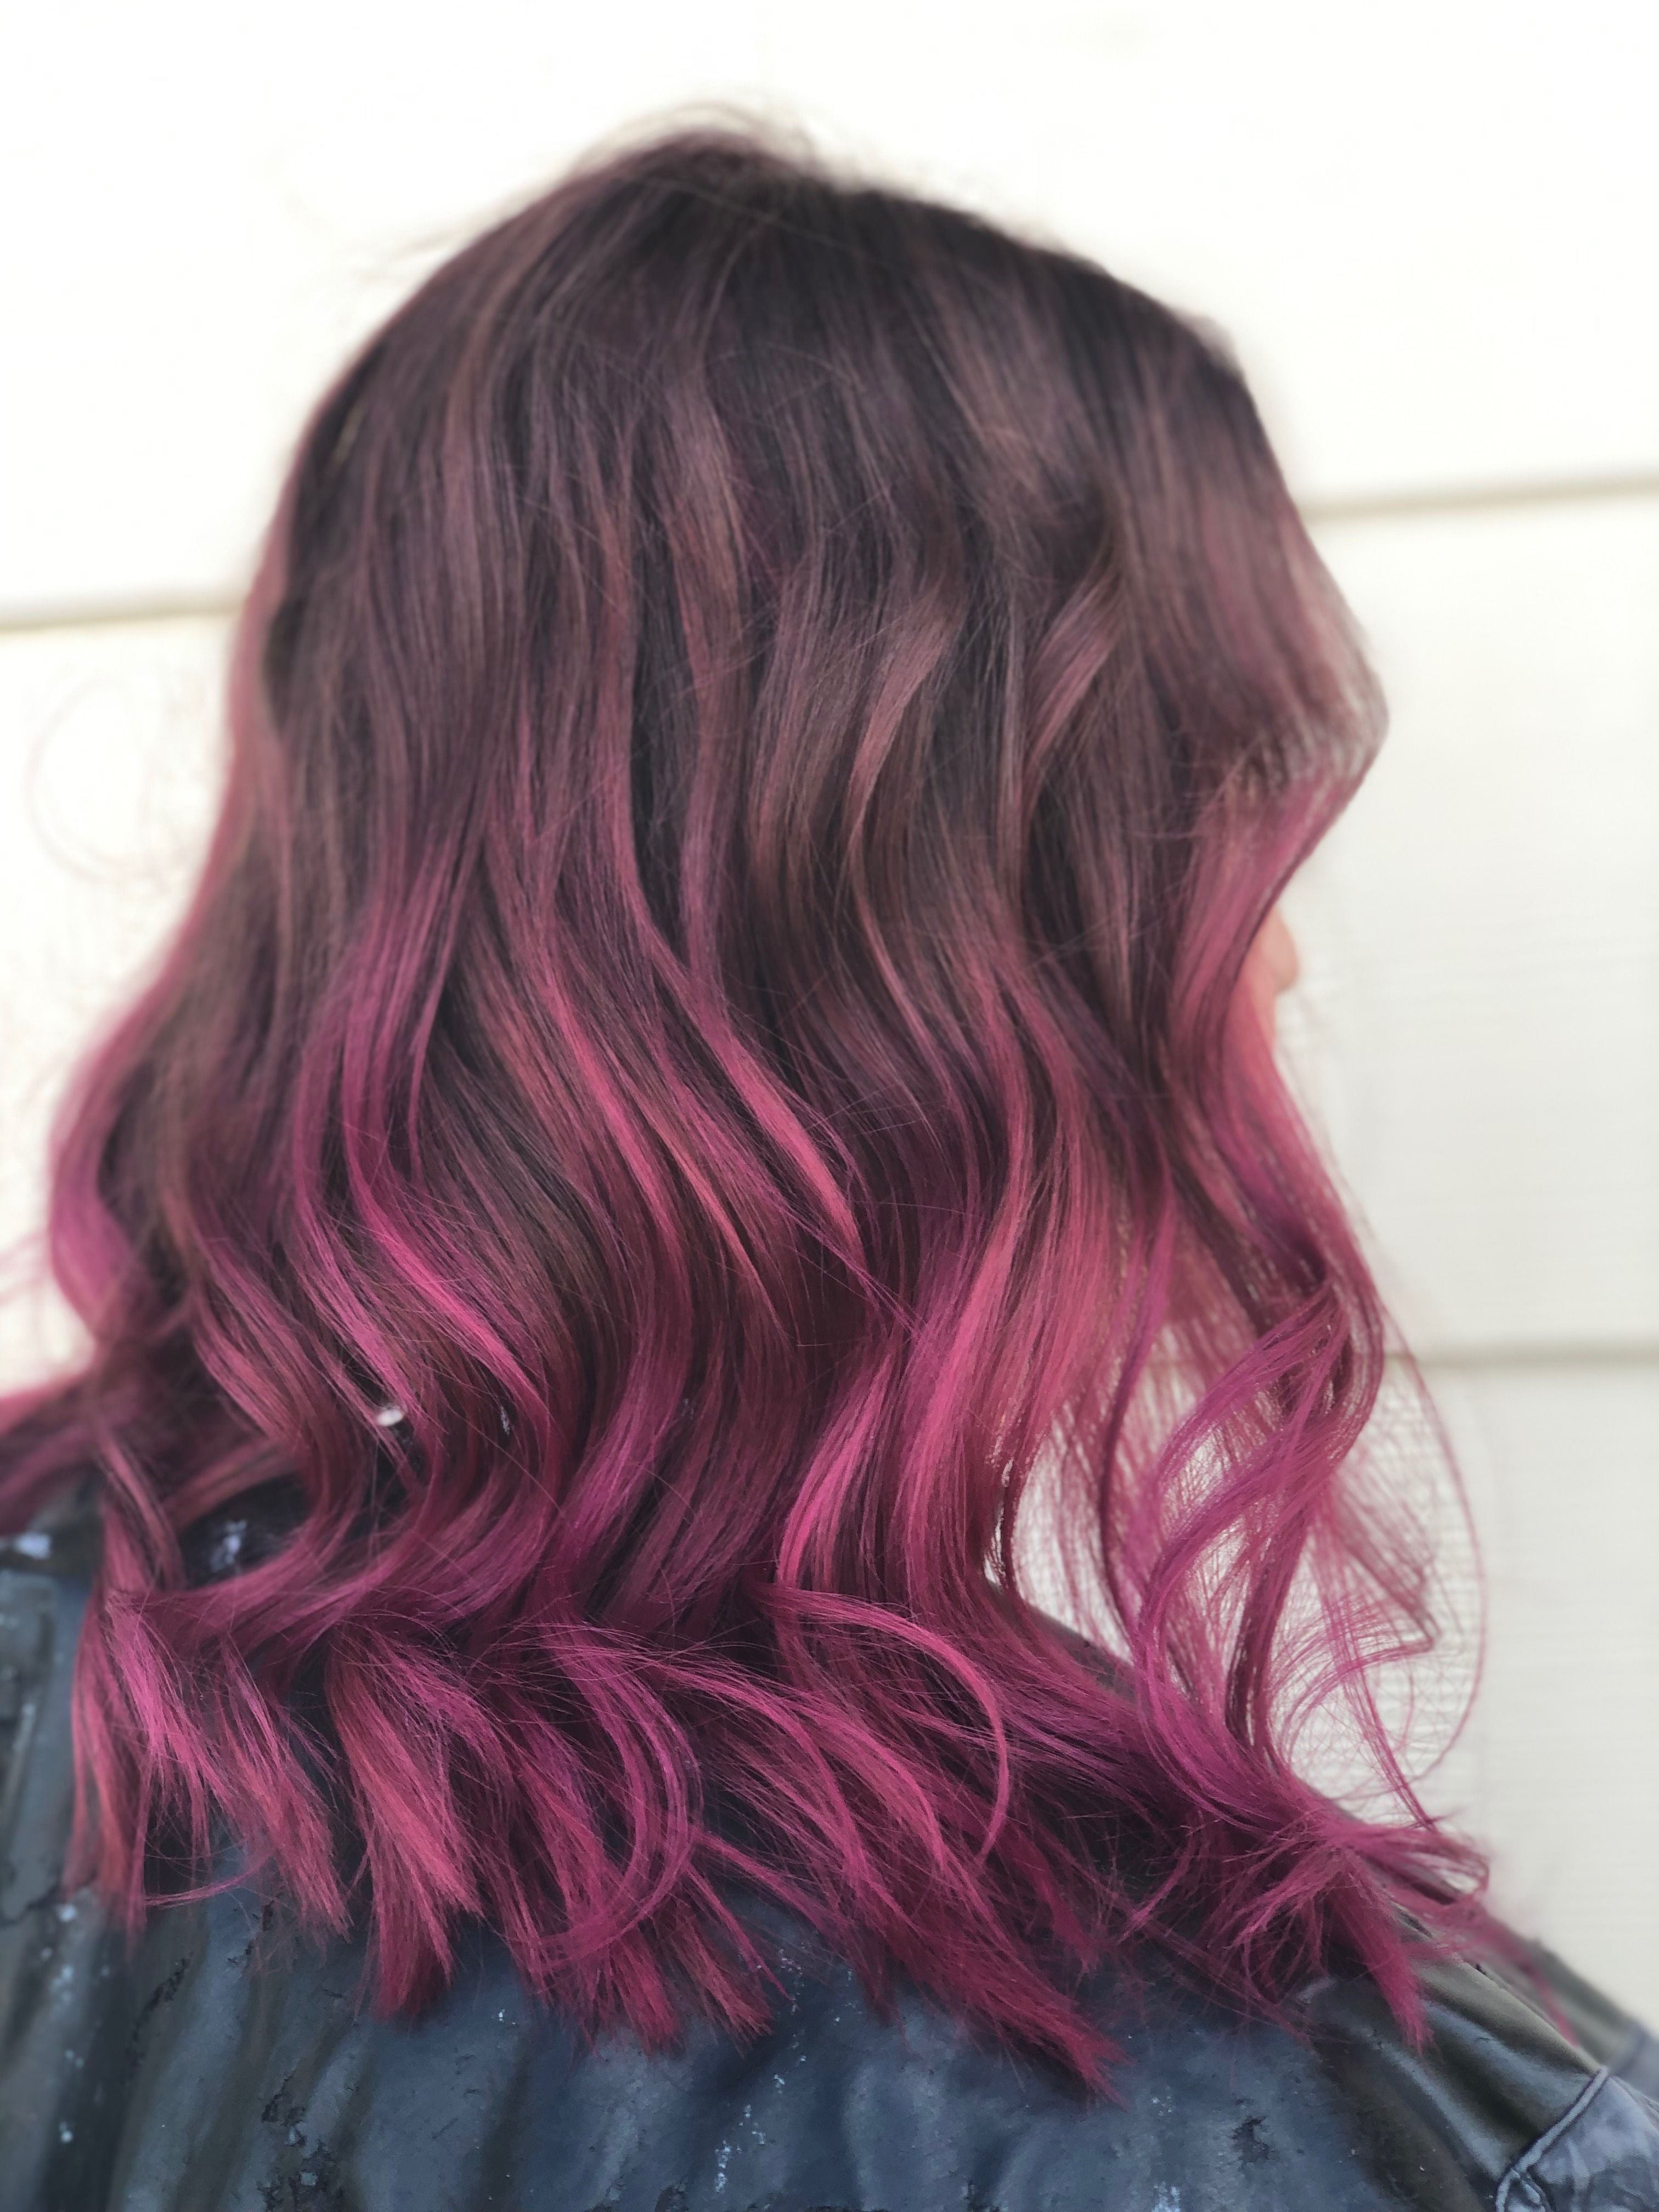 I M Absolutely In Love With My Hair Done By Amber Fetters At Honeycomb Salon In Corpus Christi Texas She Is Absolutely Cool Hairstyles Long Hair Styles Hairdo